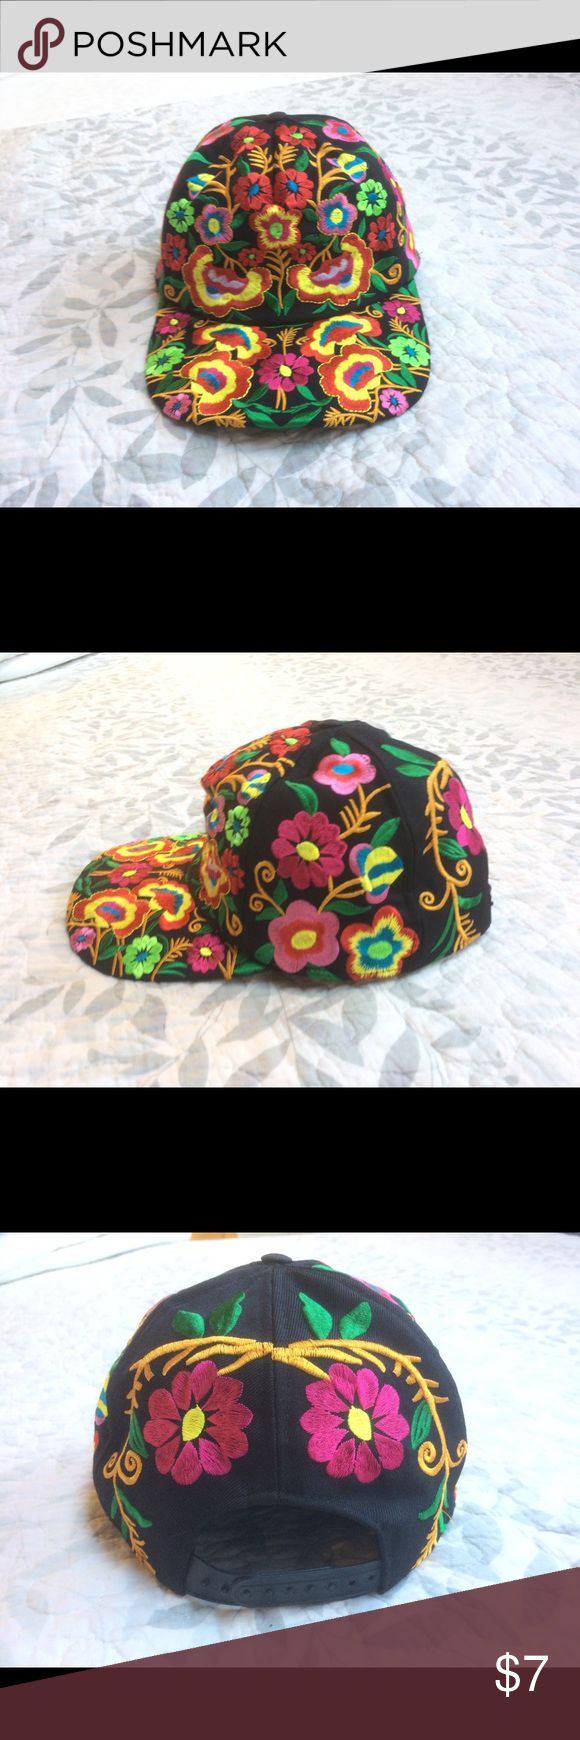 Funky floral hipster hat Snap back floral embroidered black hat. Wore this hat for maybe an hour at PRIDE is all. super cute and hipster. Accessories Hats